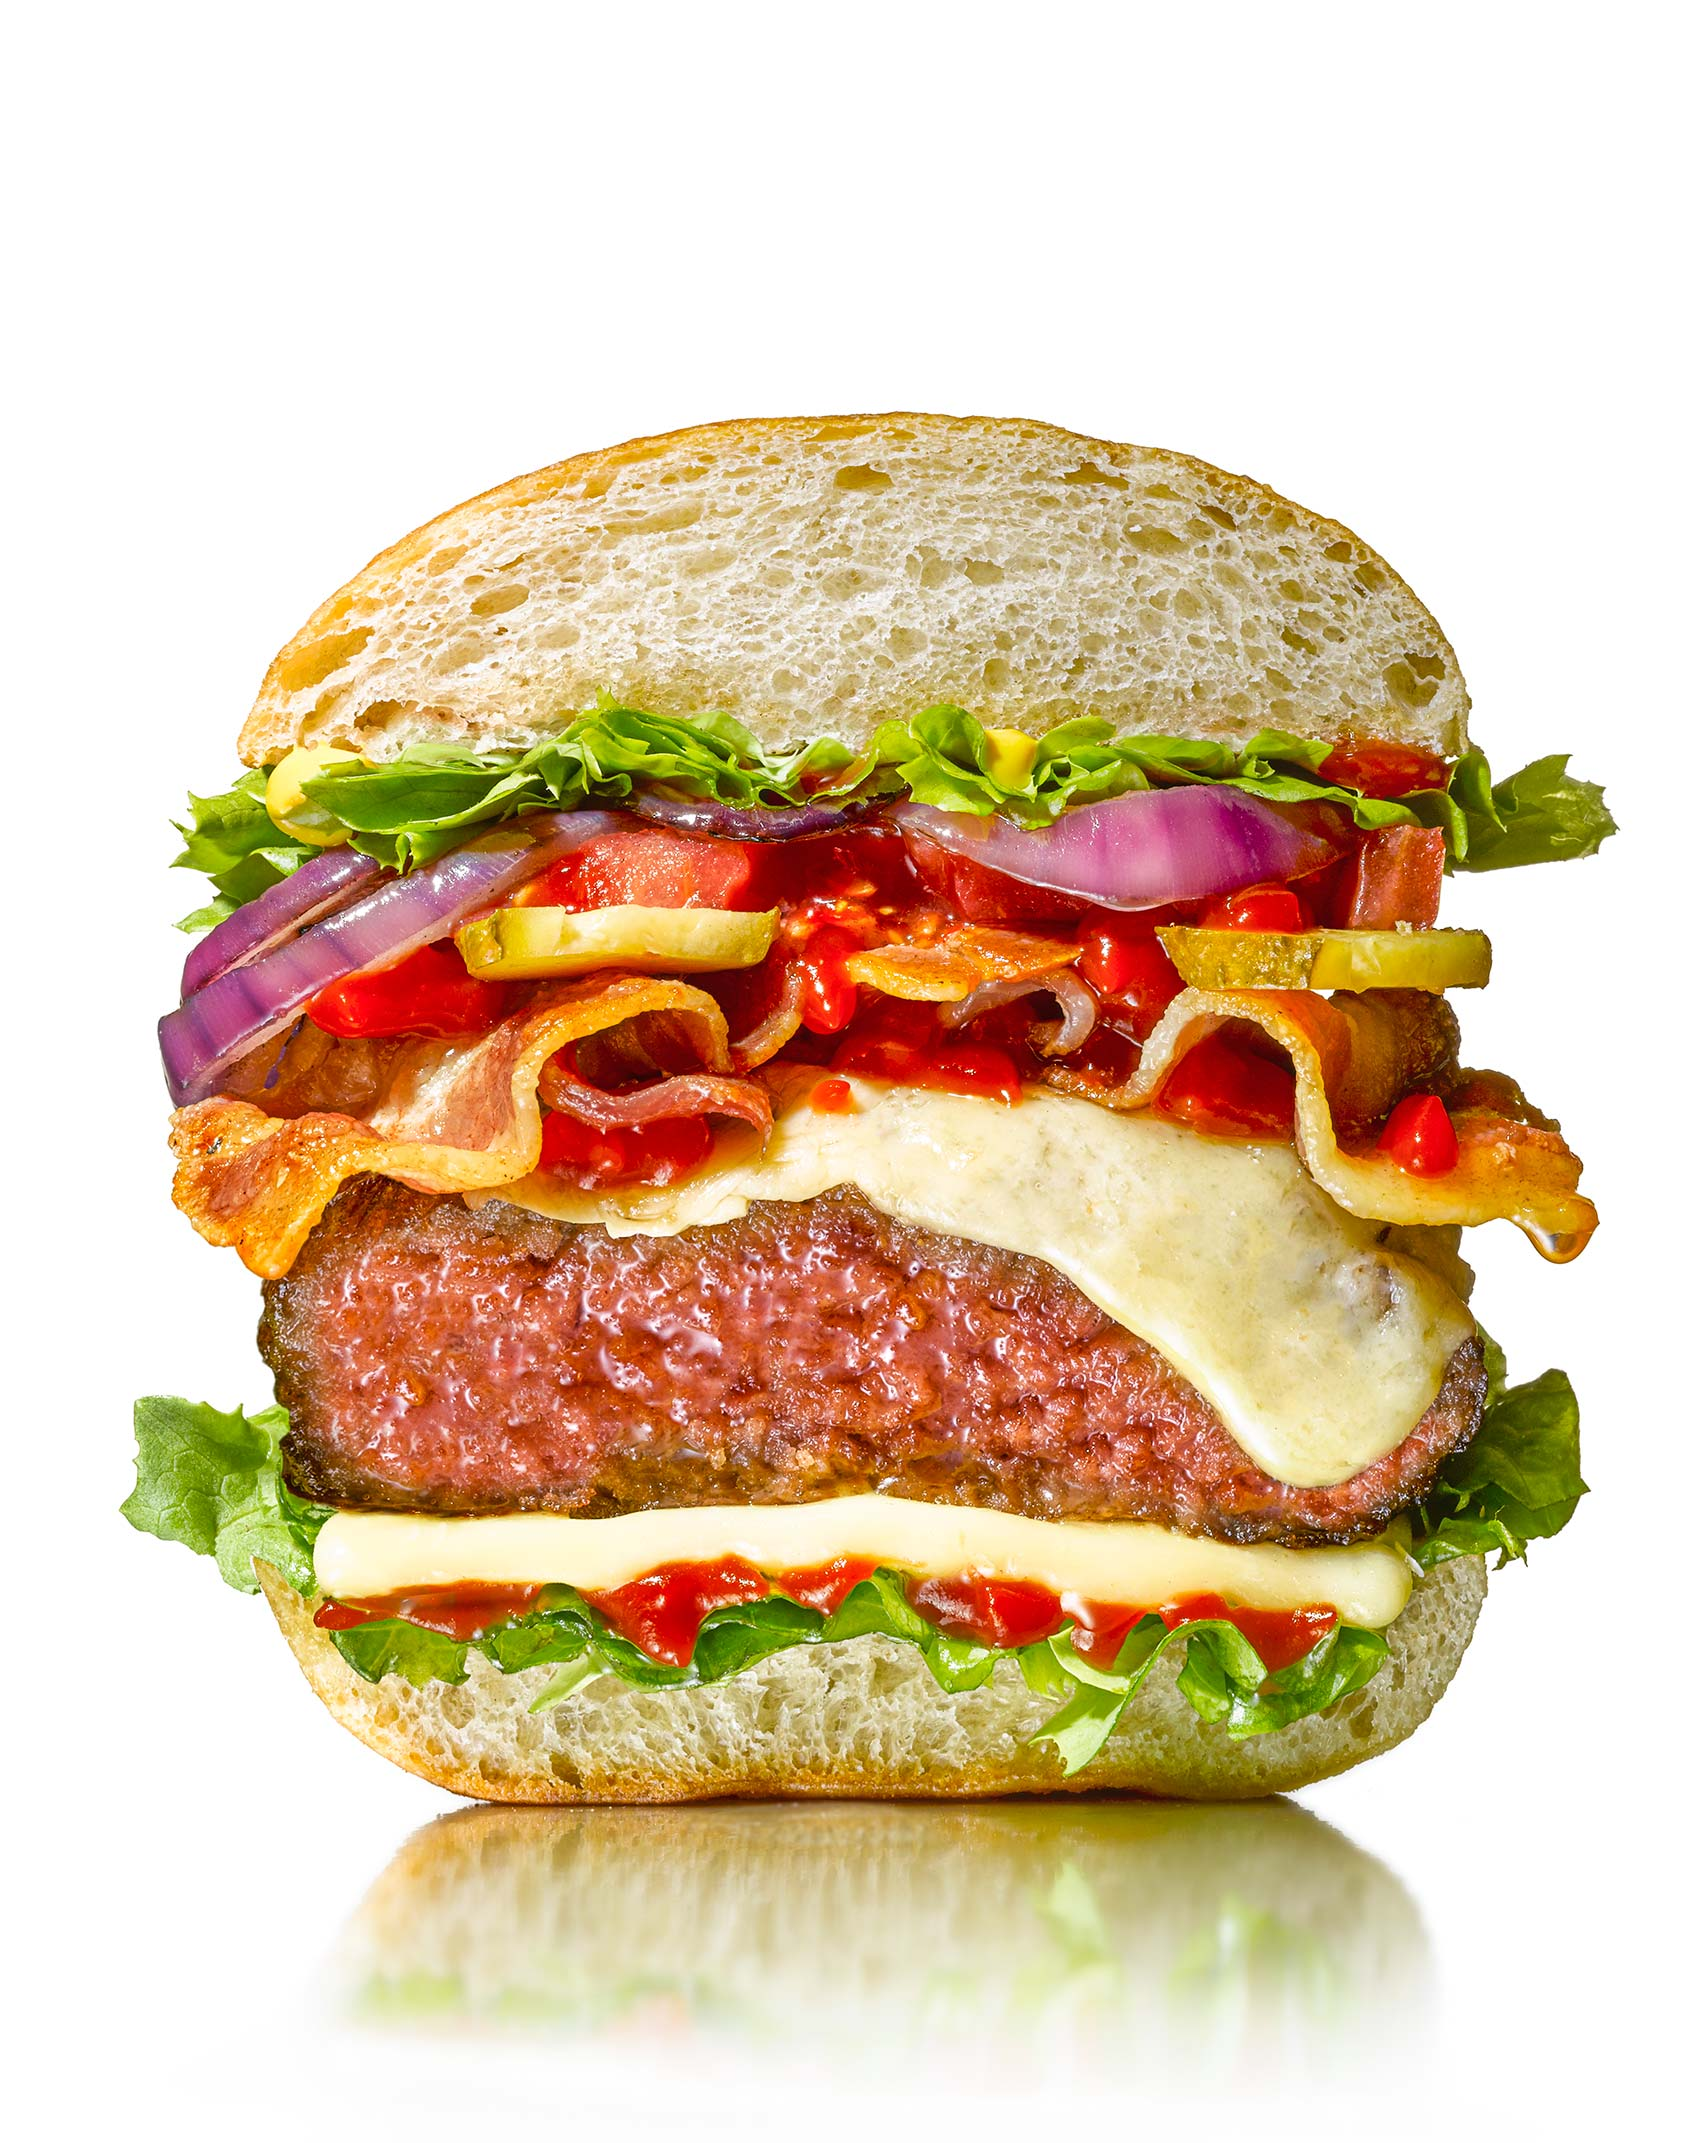 Burger sliced through | Colin Campbell - Food Photographer